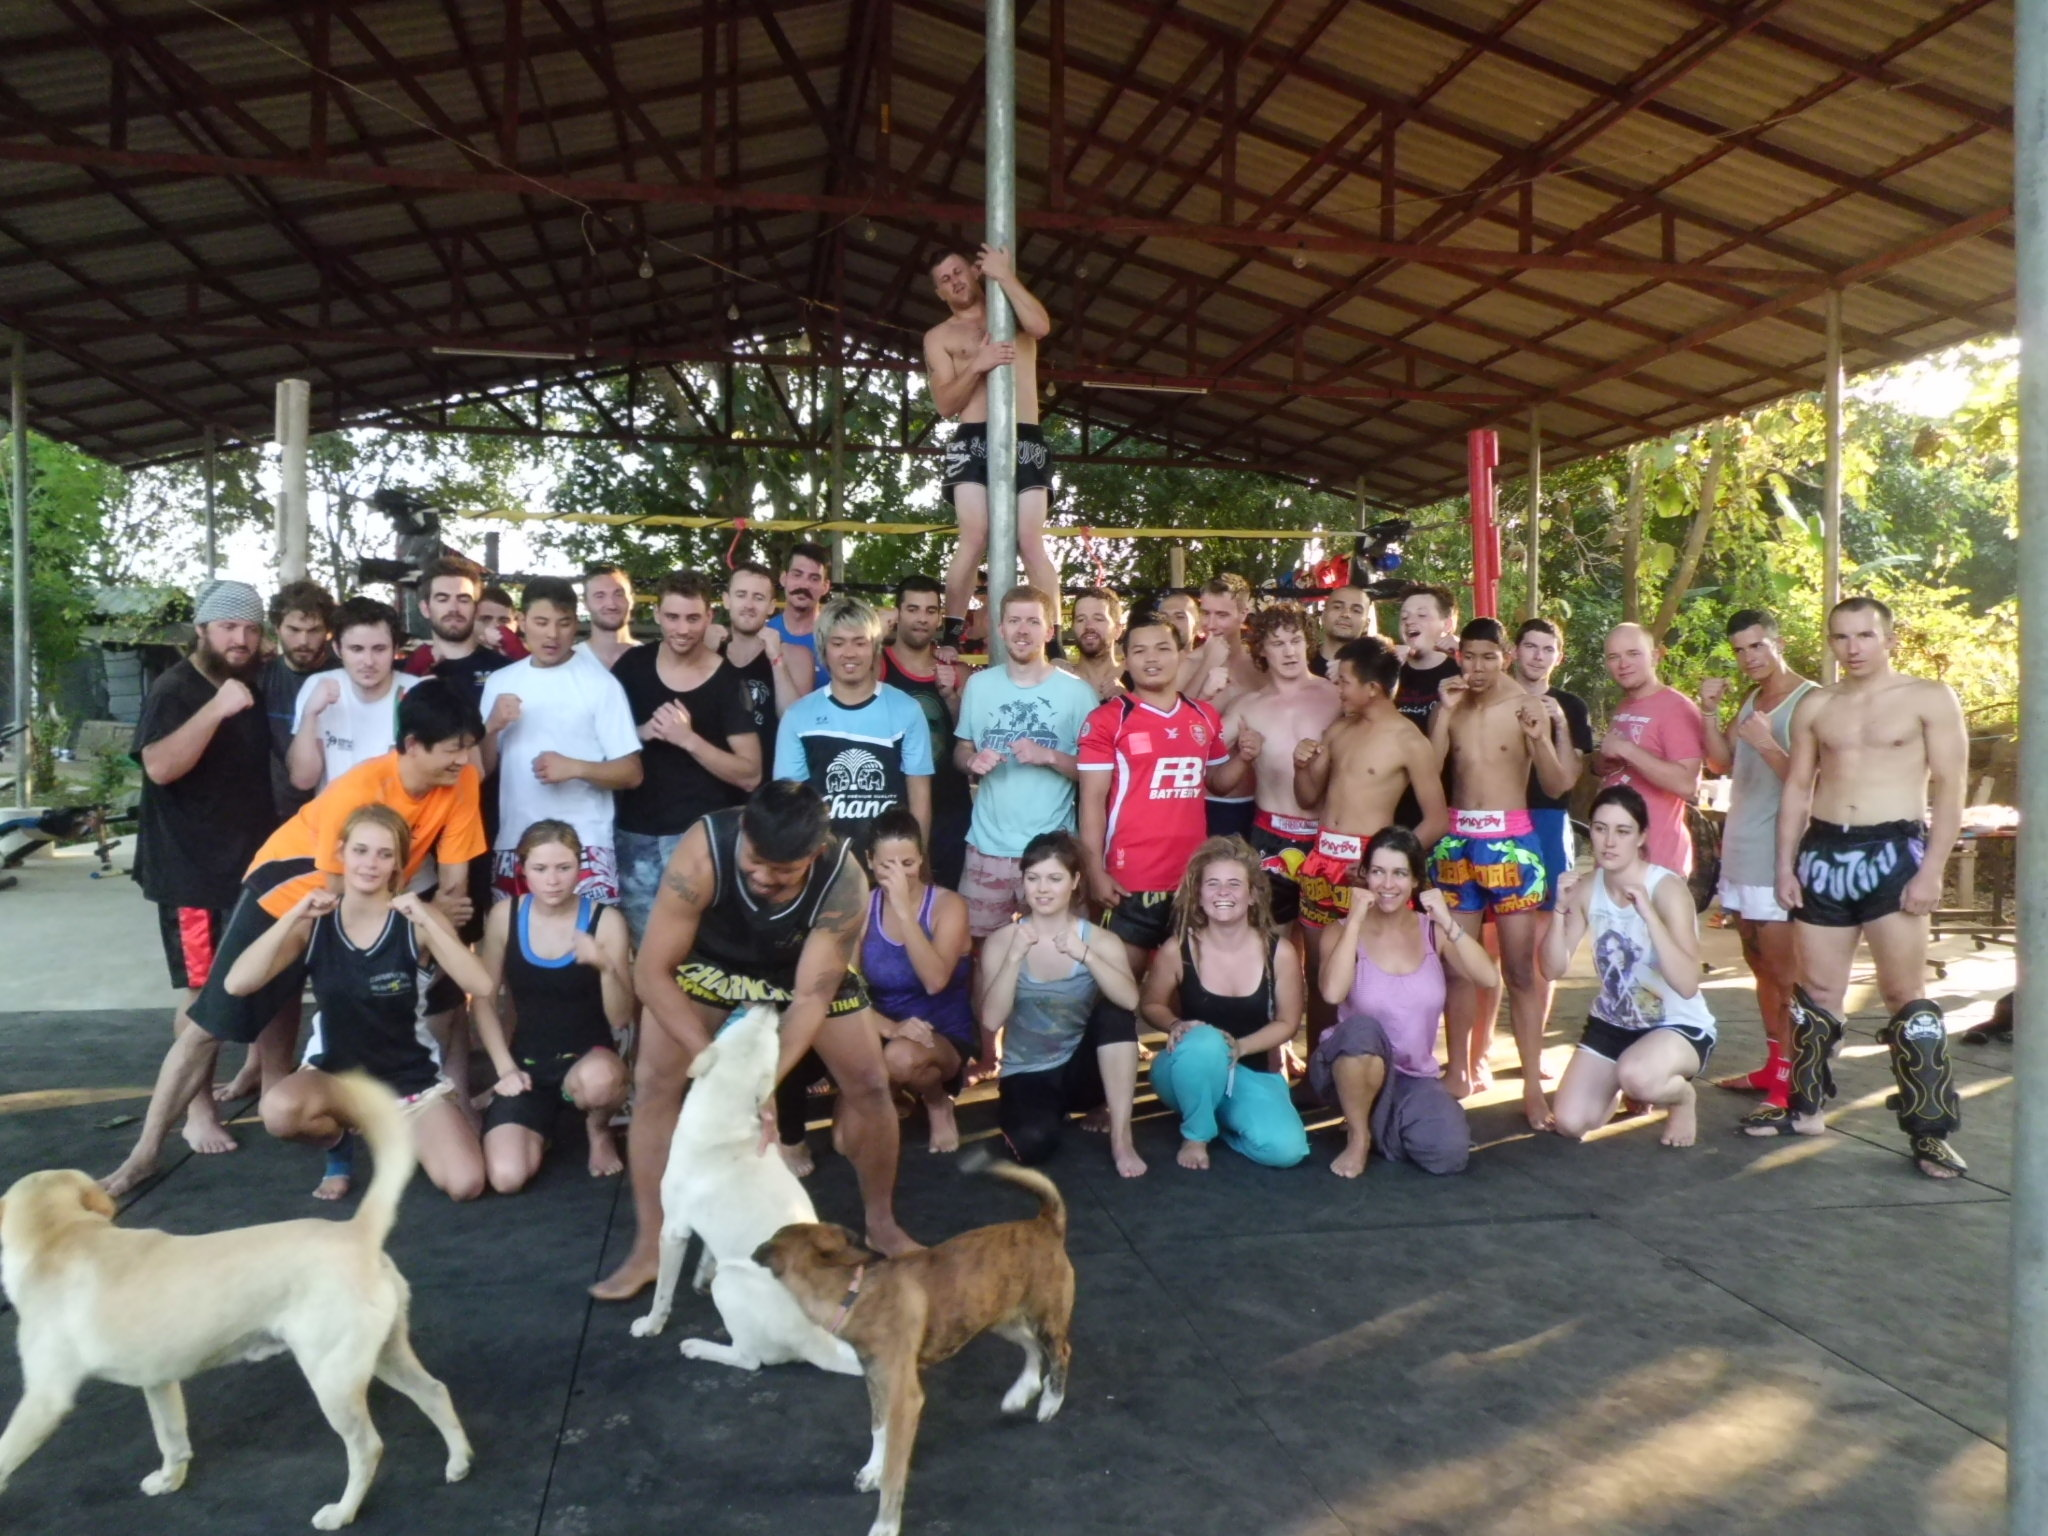 An American in Thailand: Lost in Charn Chai - Part 1